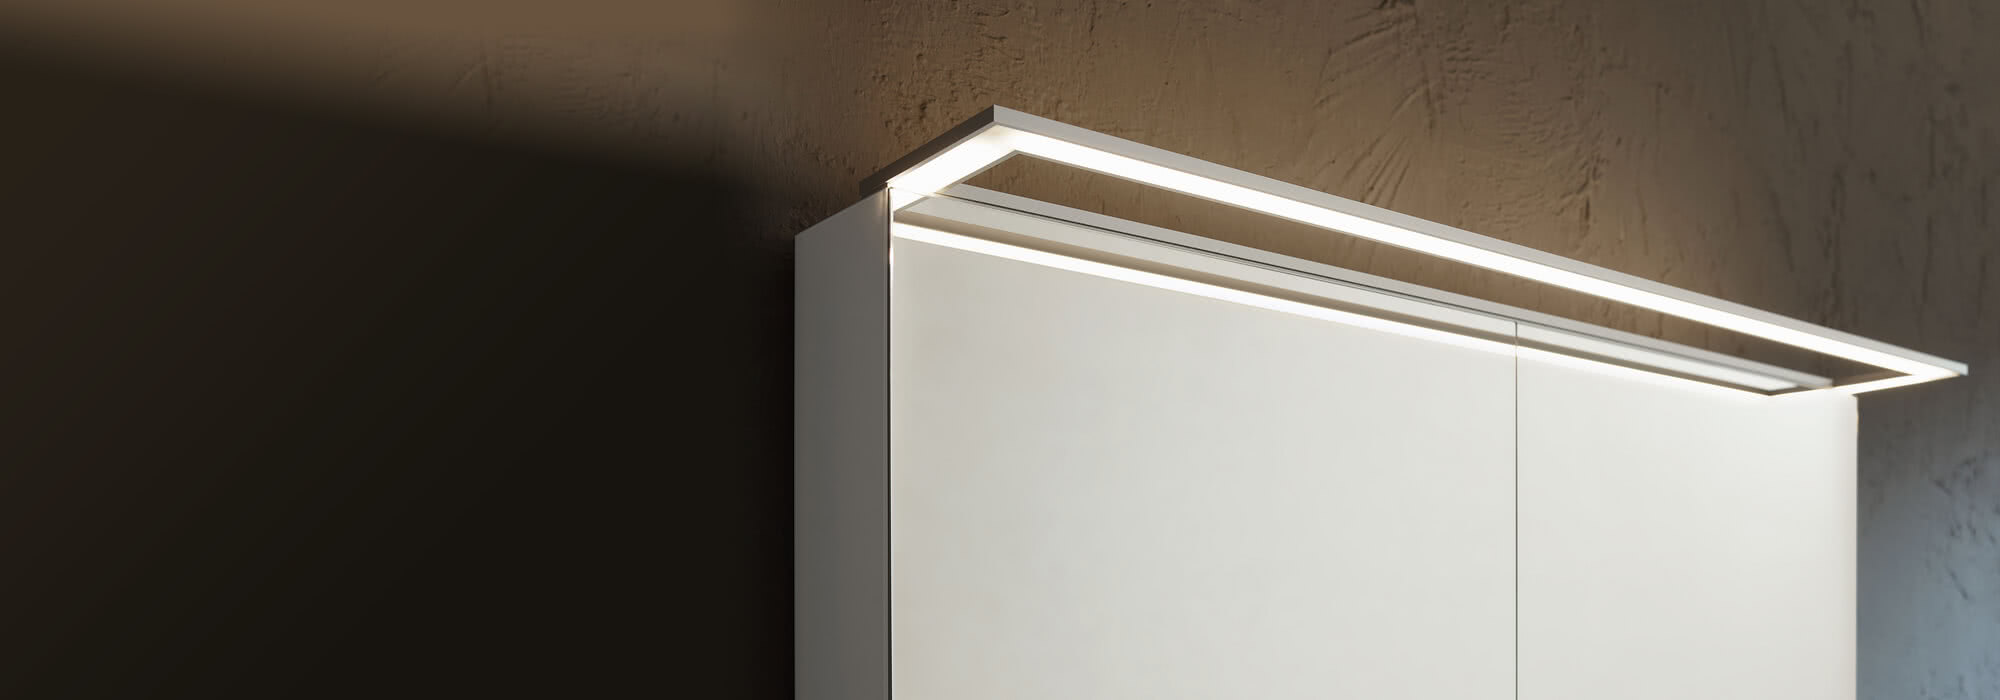 External lighting for mirror cabinet